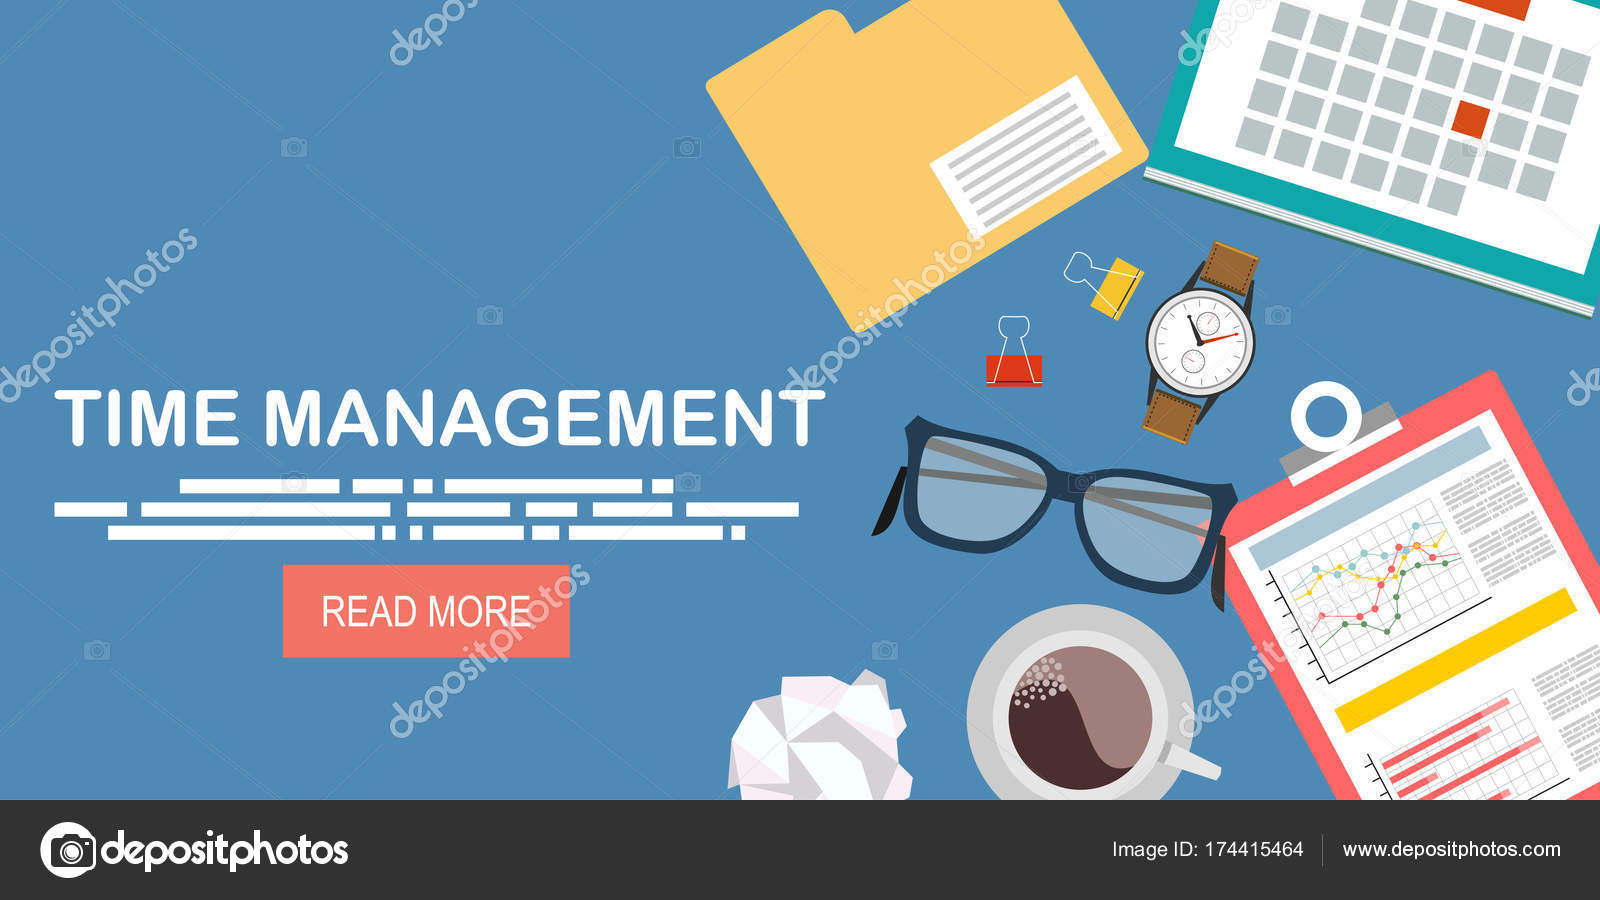 Time Management Banner Stock Vector C Nikvector20 Gmail Com 174415464